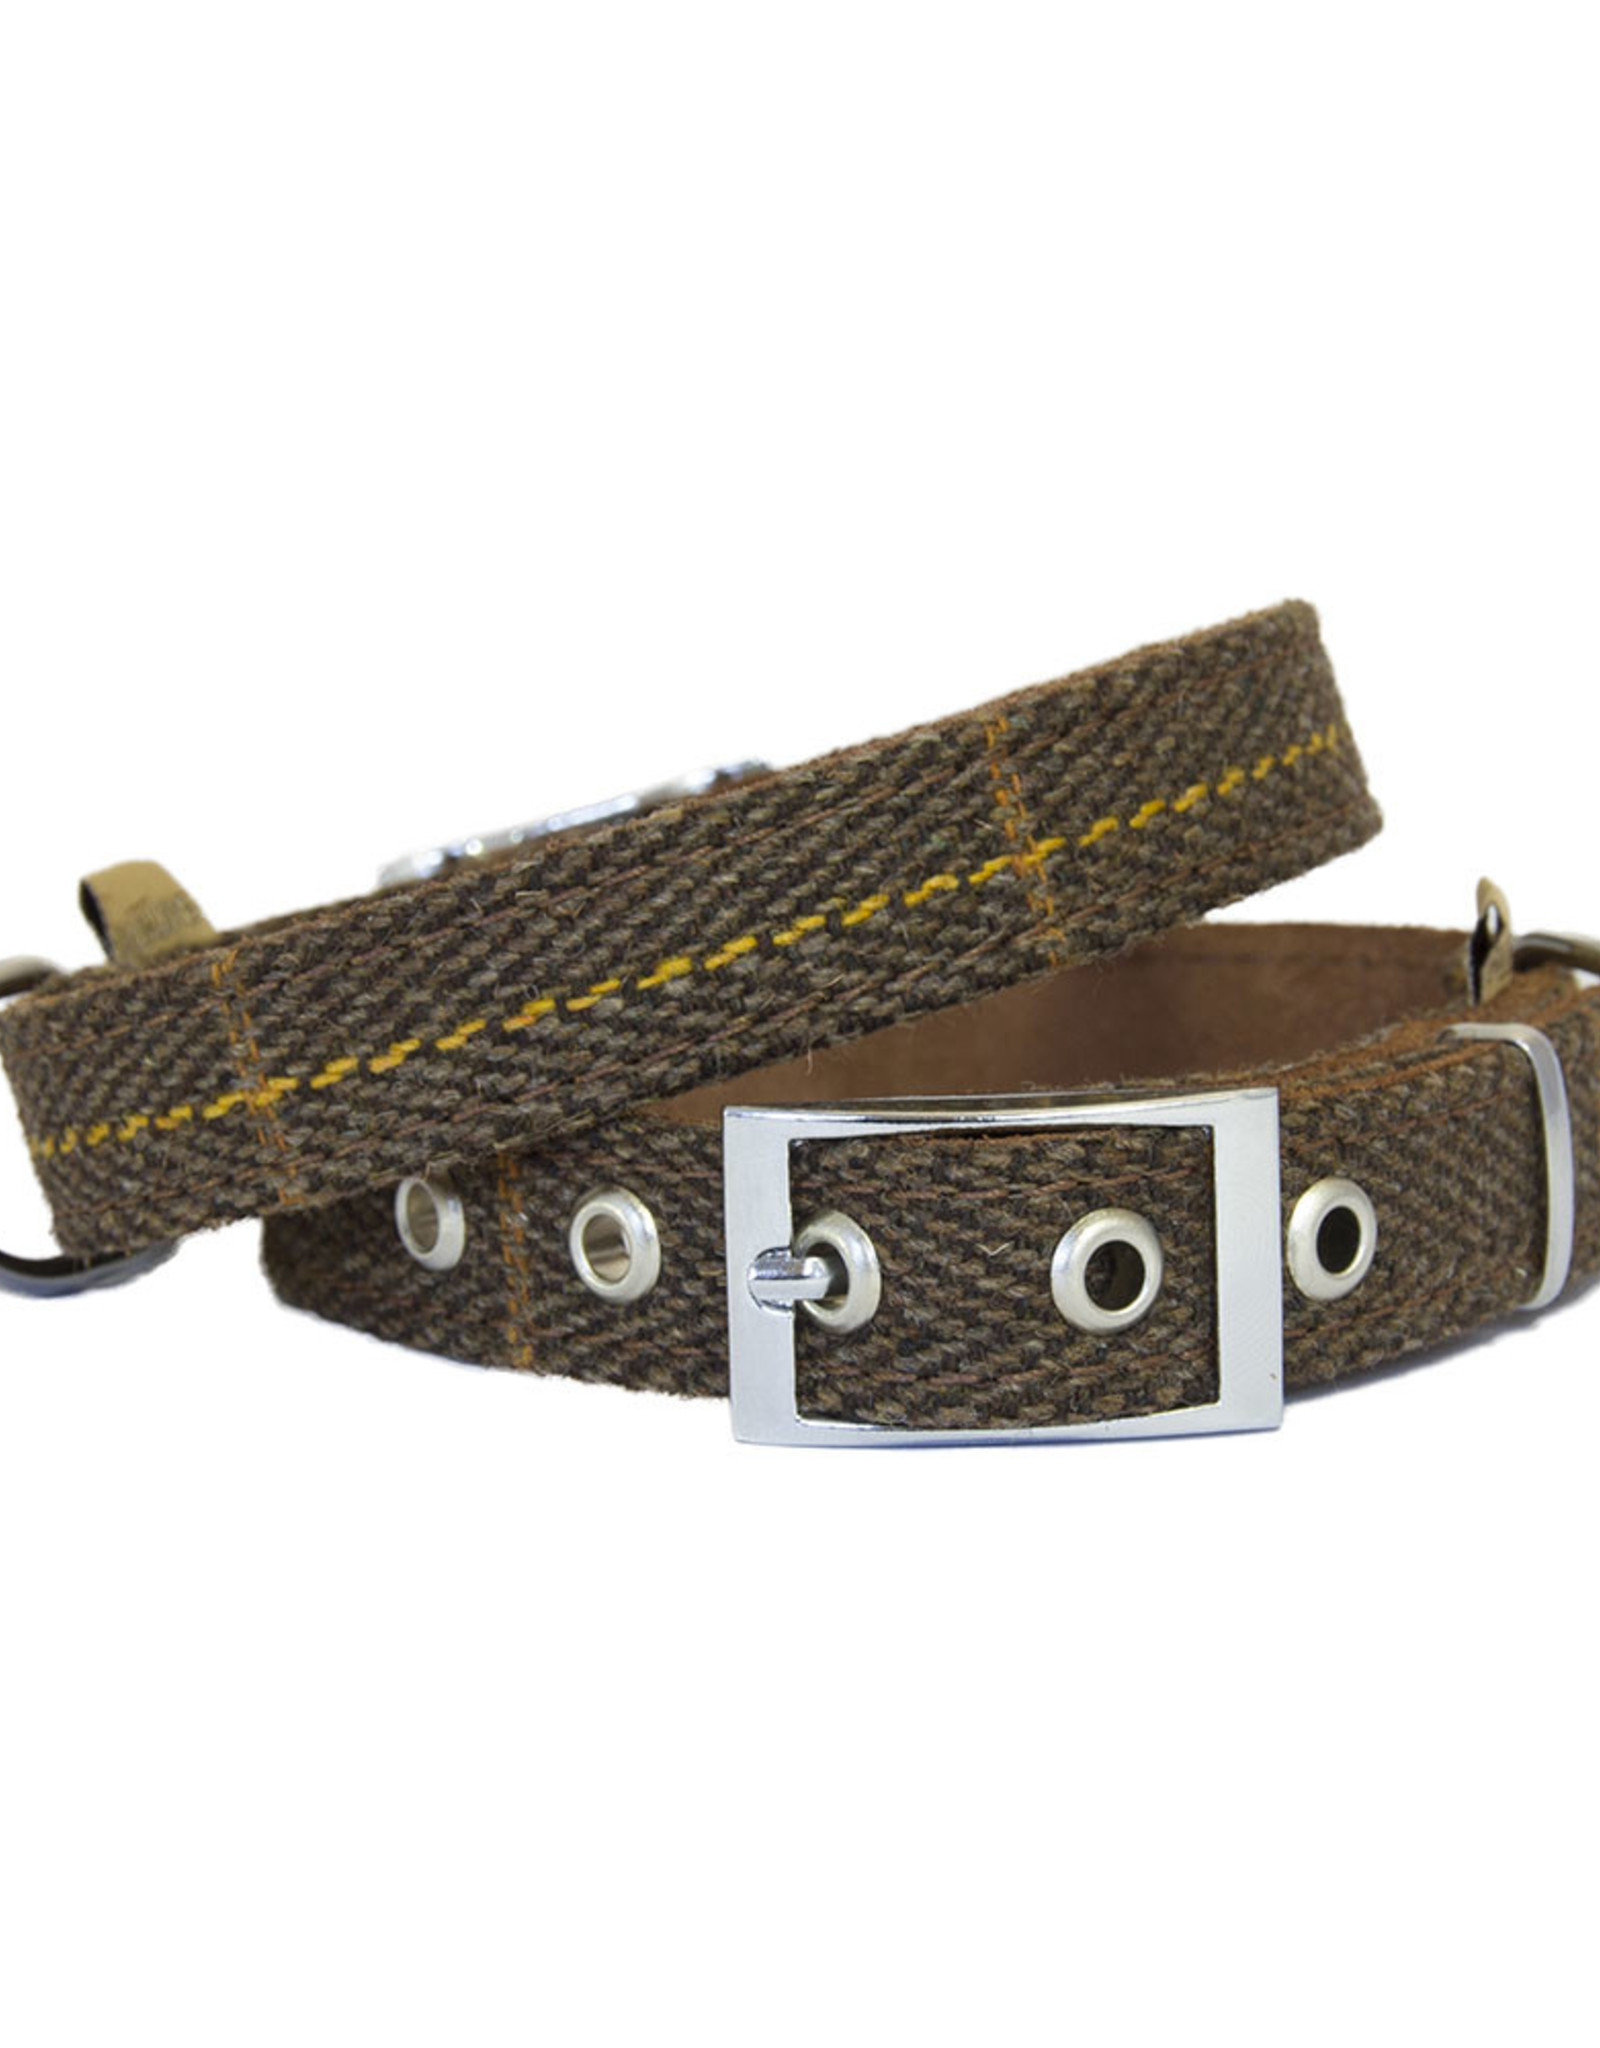 Earthbound Tweed Dog Collar in Brown